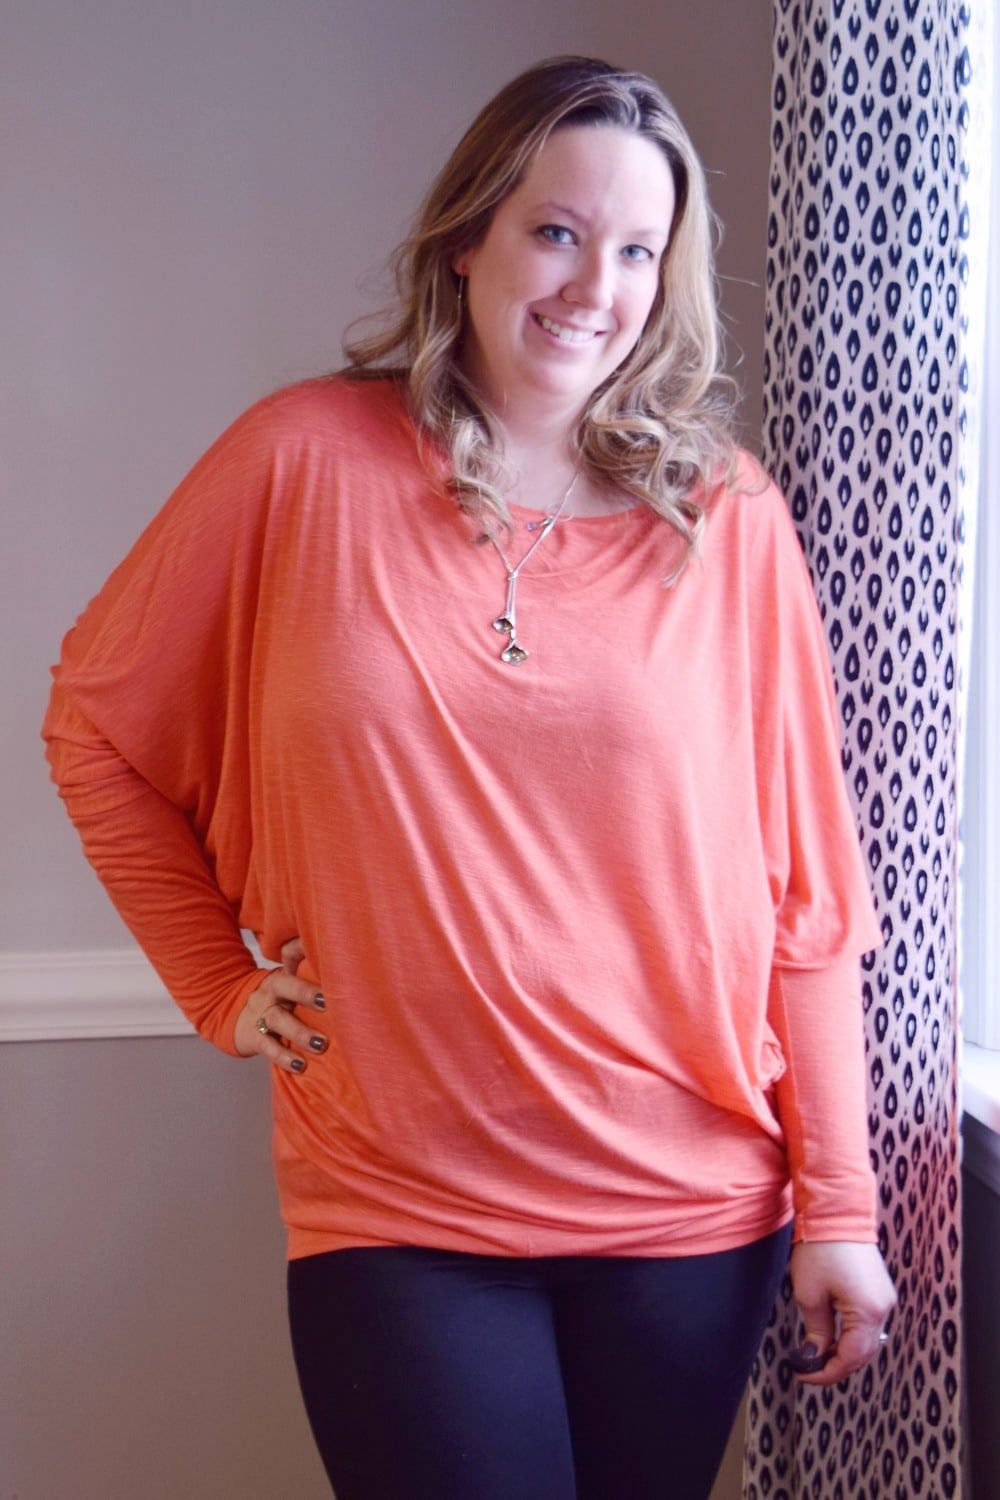 It's dreamy, it's drapey, and it's easy to sew... the Dreamy Drape Top is a ladies batwing top sewing pattern that's super comfy and totally on-trend.